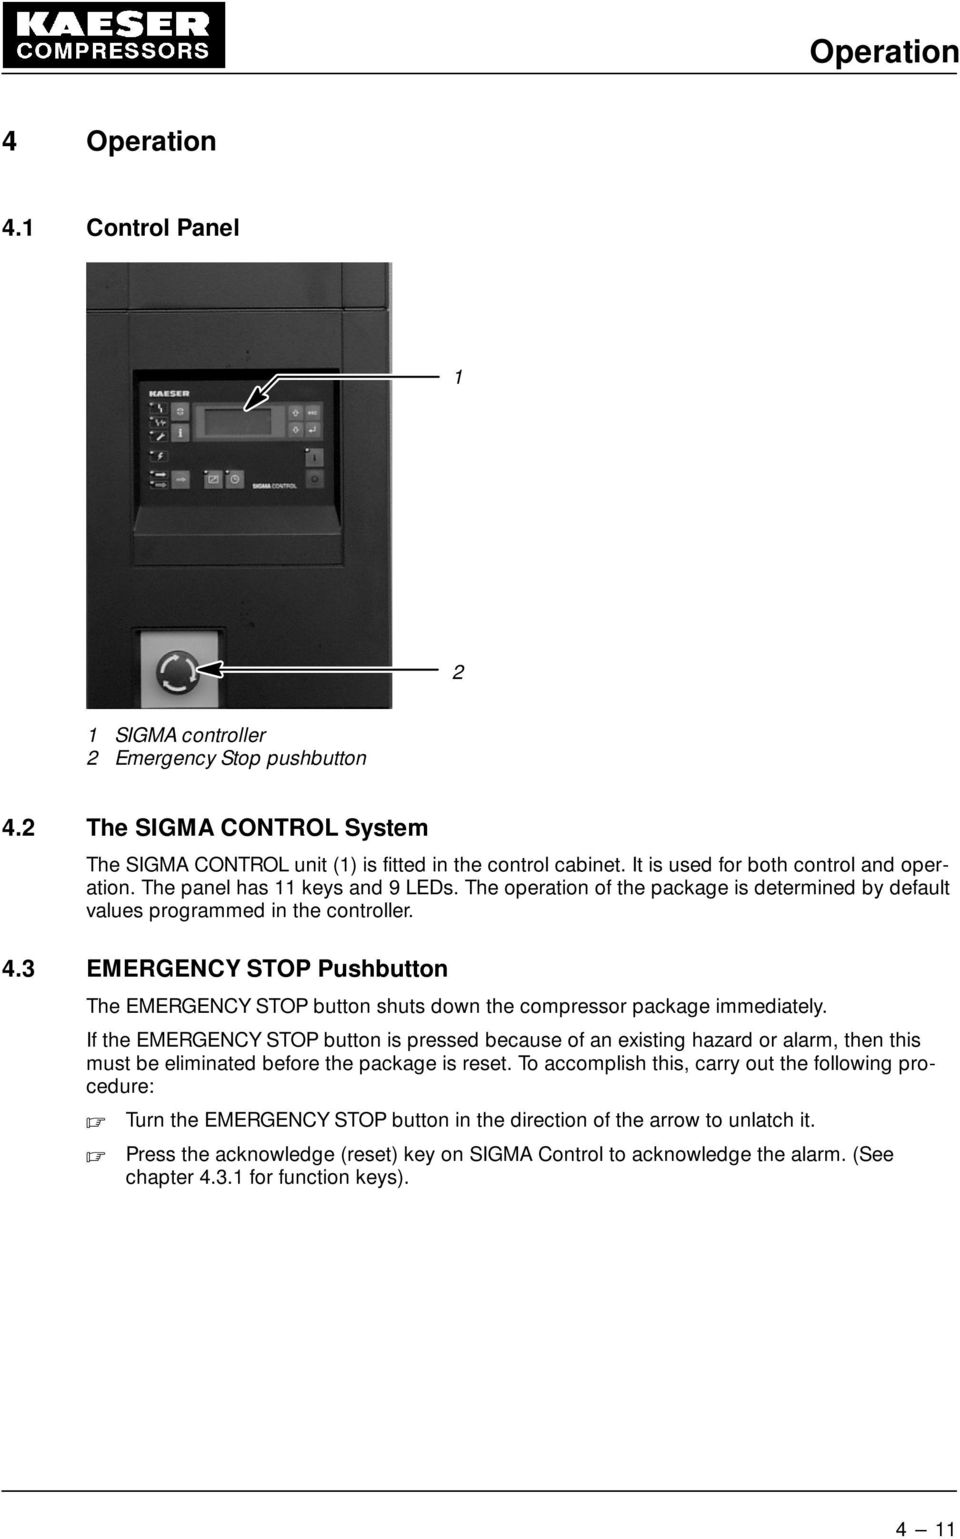 medium resolution of 3 emergency stop pushbutton the emergency stop button shuts down the compressor package immediately